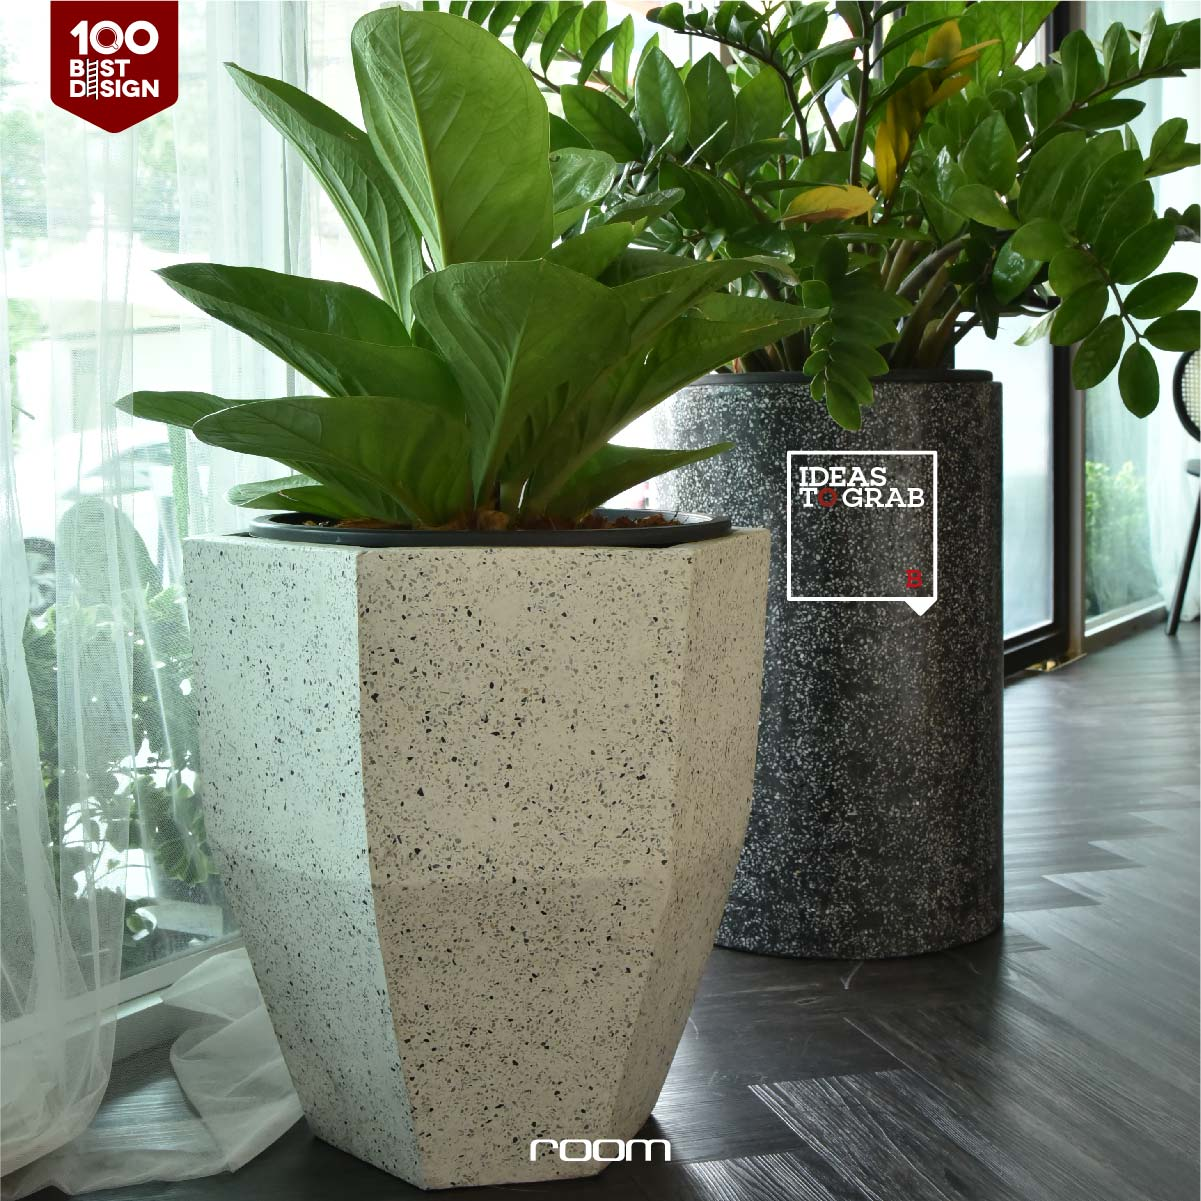 Tree pot for decoration in Cafe or bakeshop